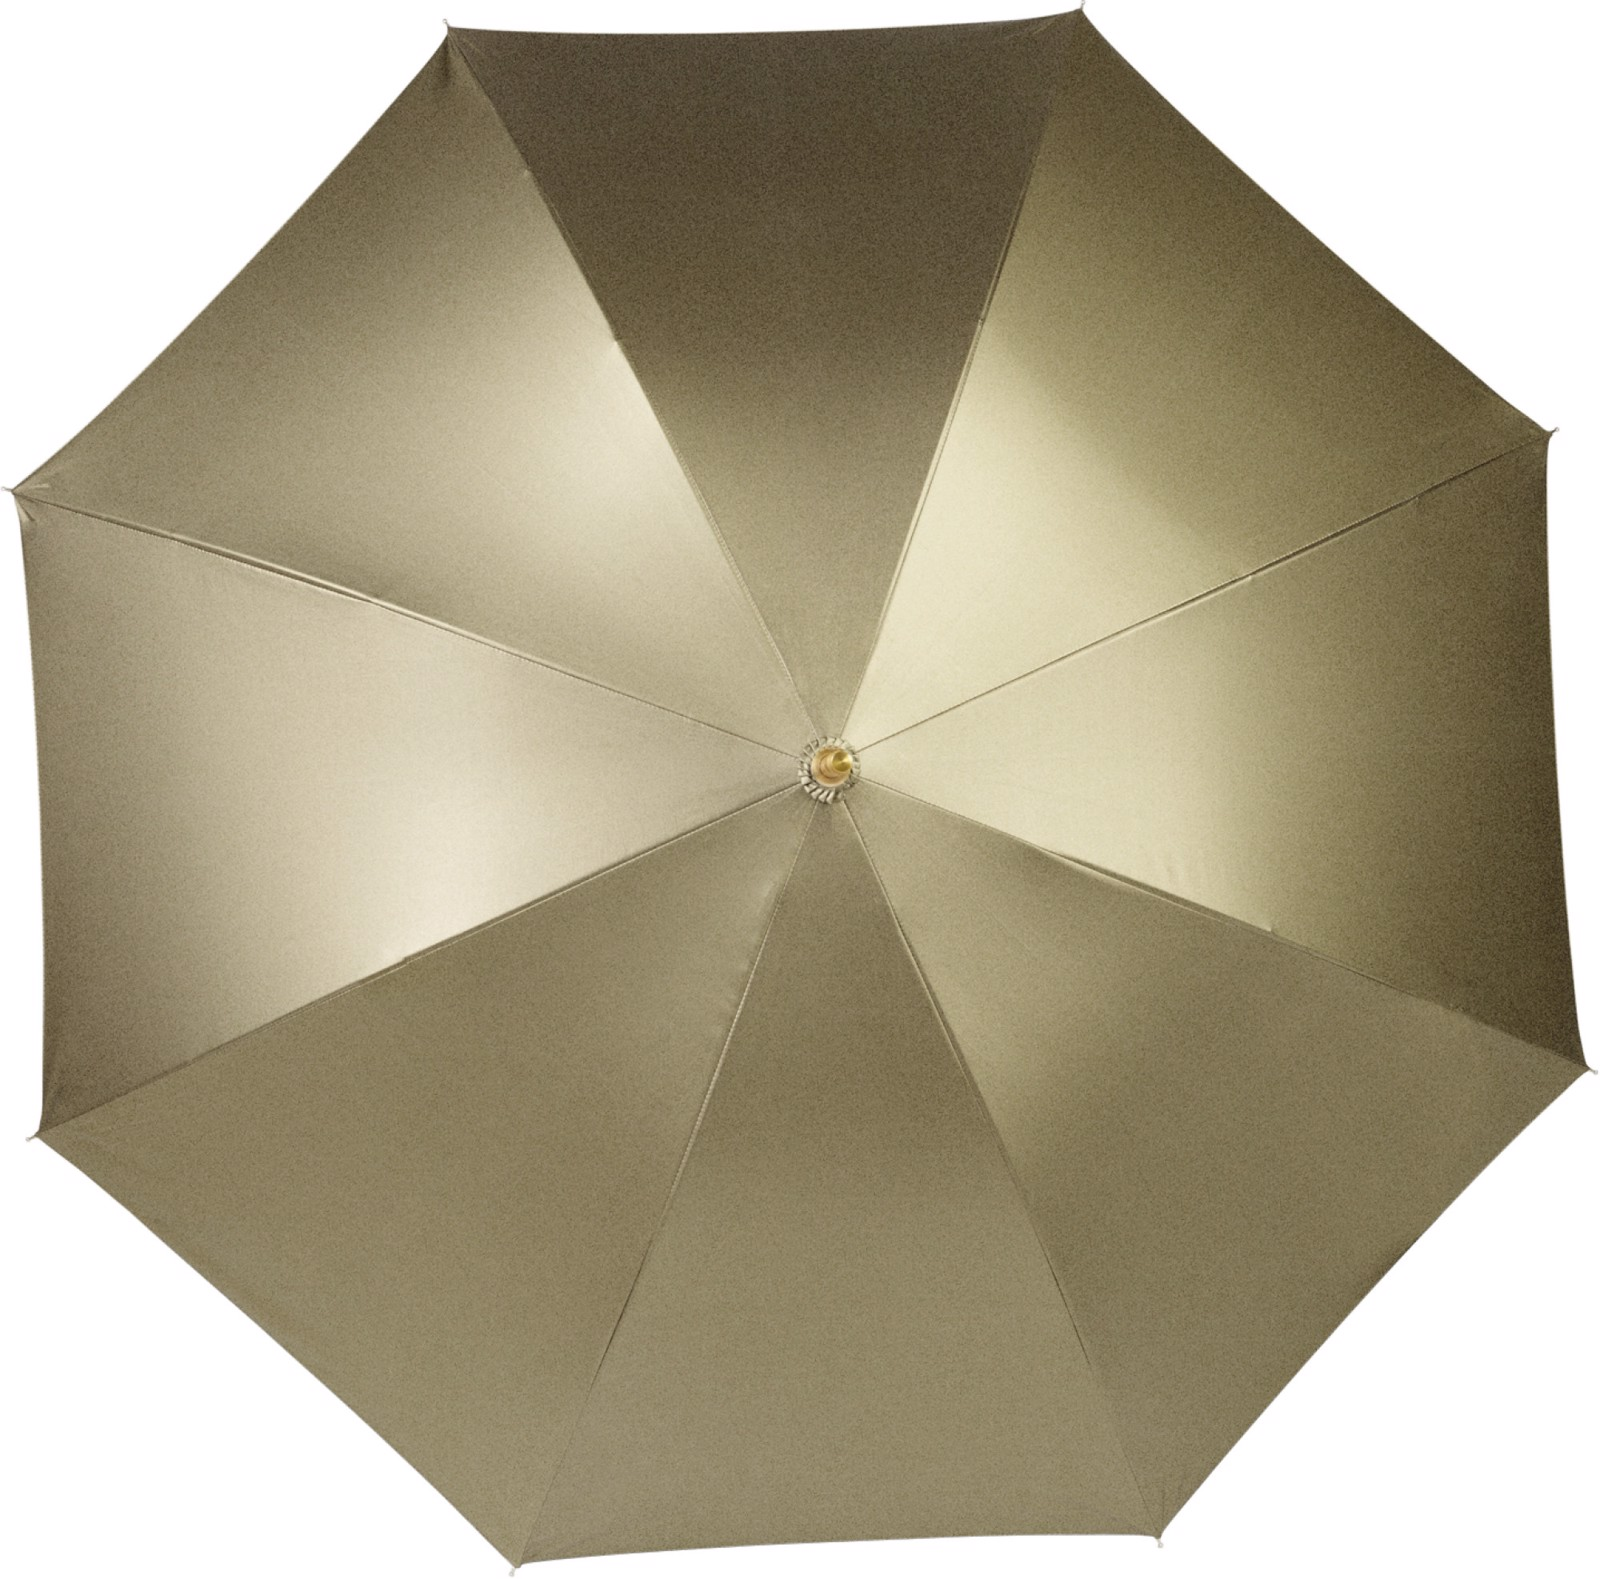 Pongee (190T) umbrella - Gold